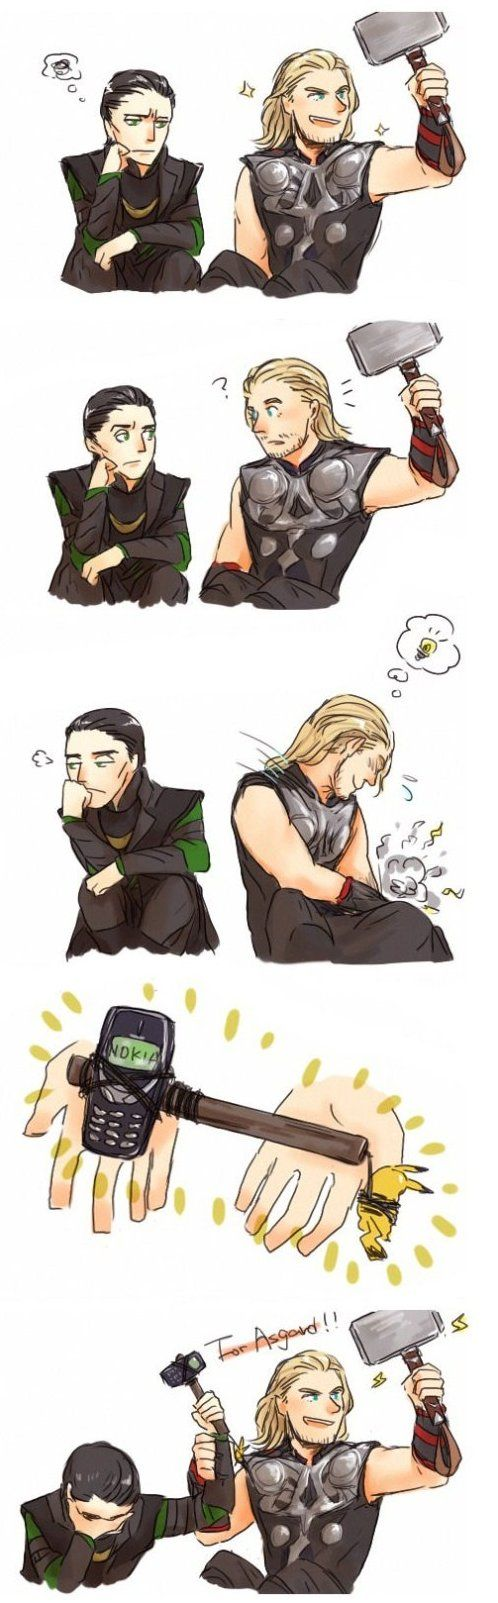 Loki and Thor - Funny Pictures, LOL, Jokes and MEME updated hourly by Funny Pictures Blog